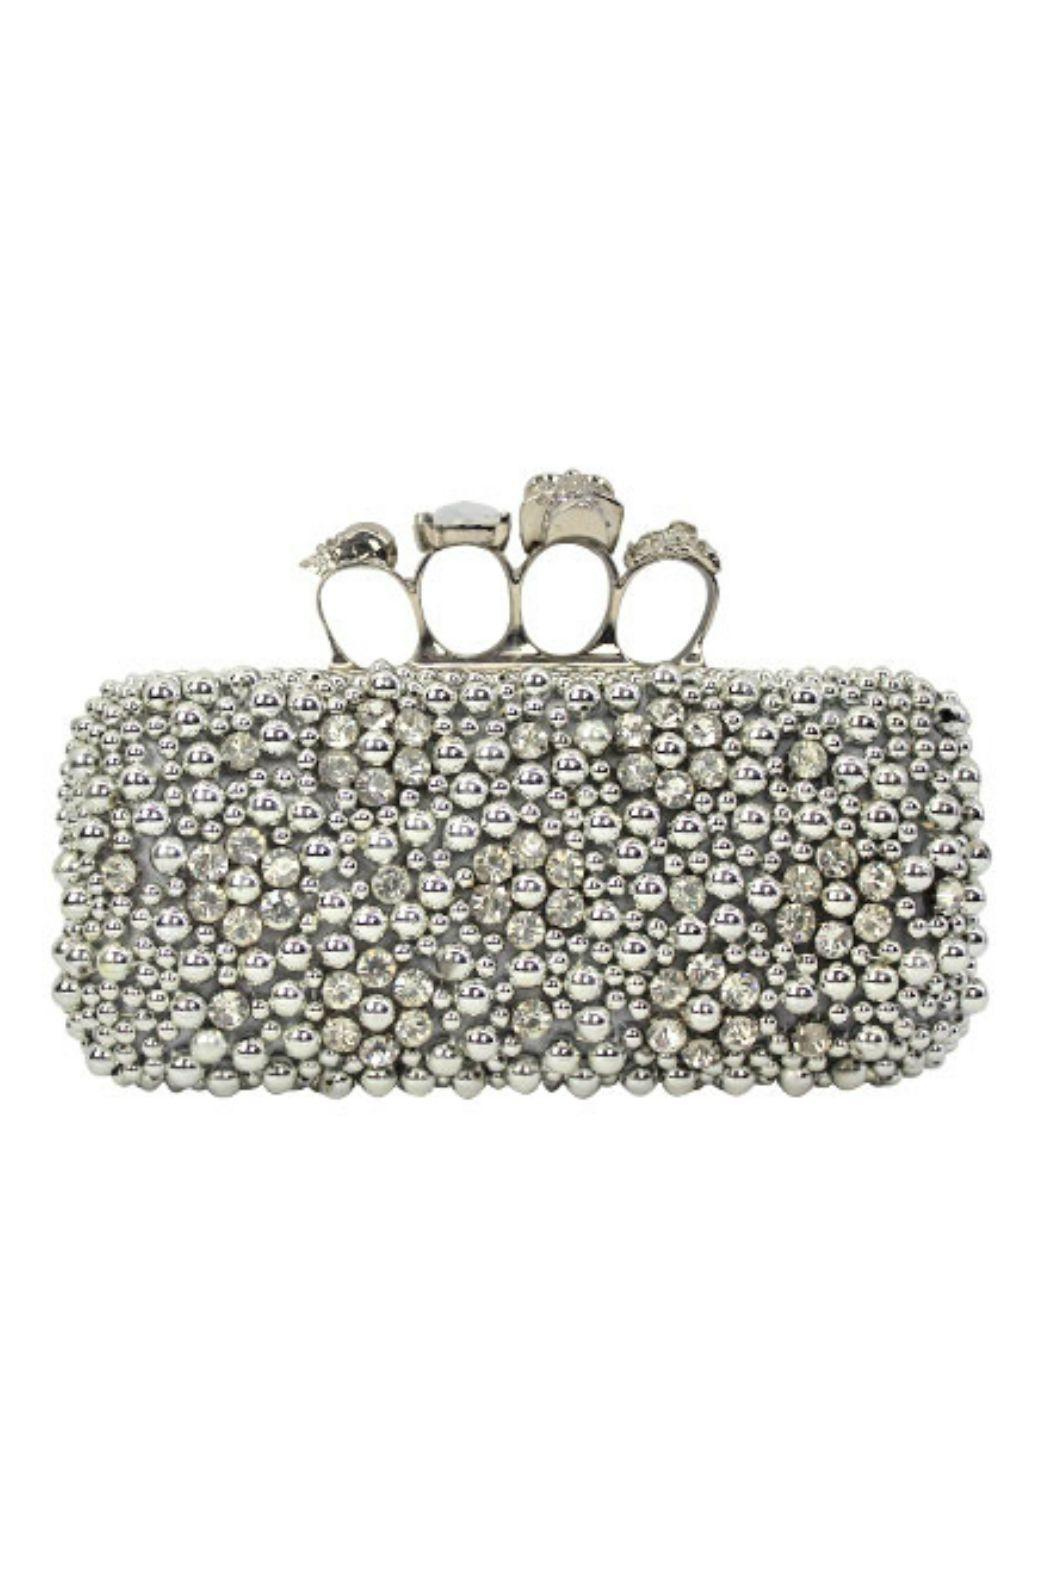 abed4f94798b Petunias of Naples Bling Knuckle Clutch from Naples — Shoptiques